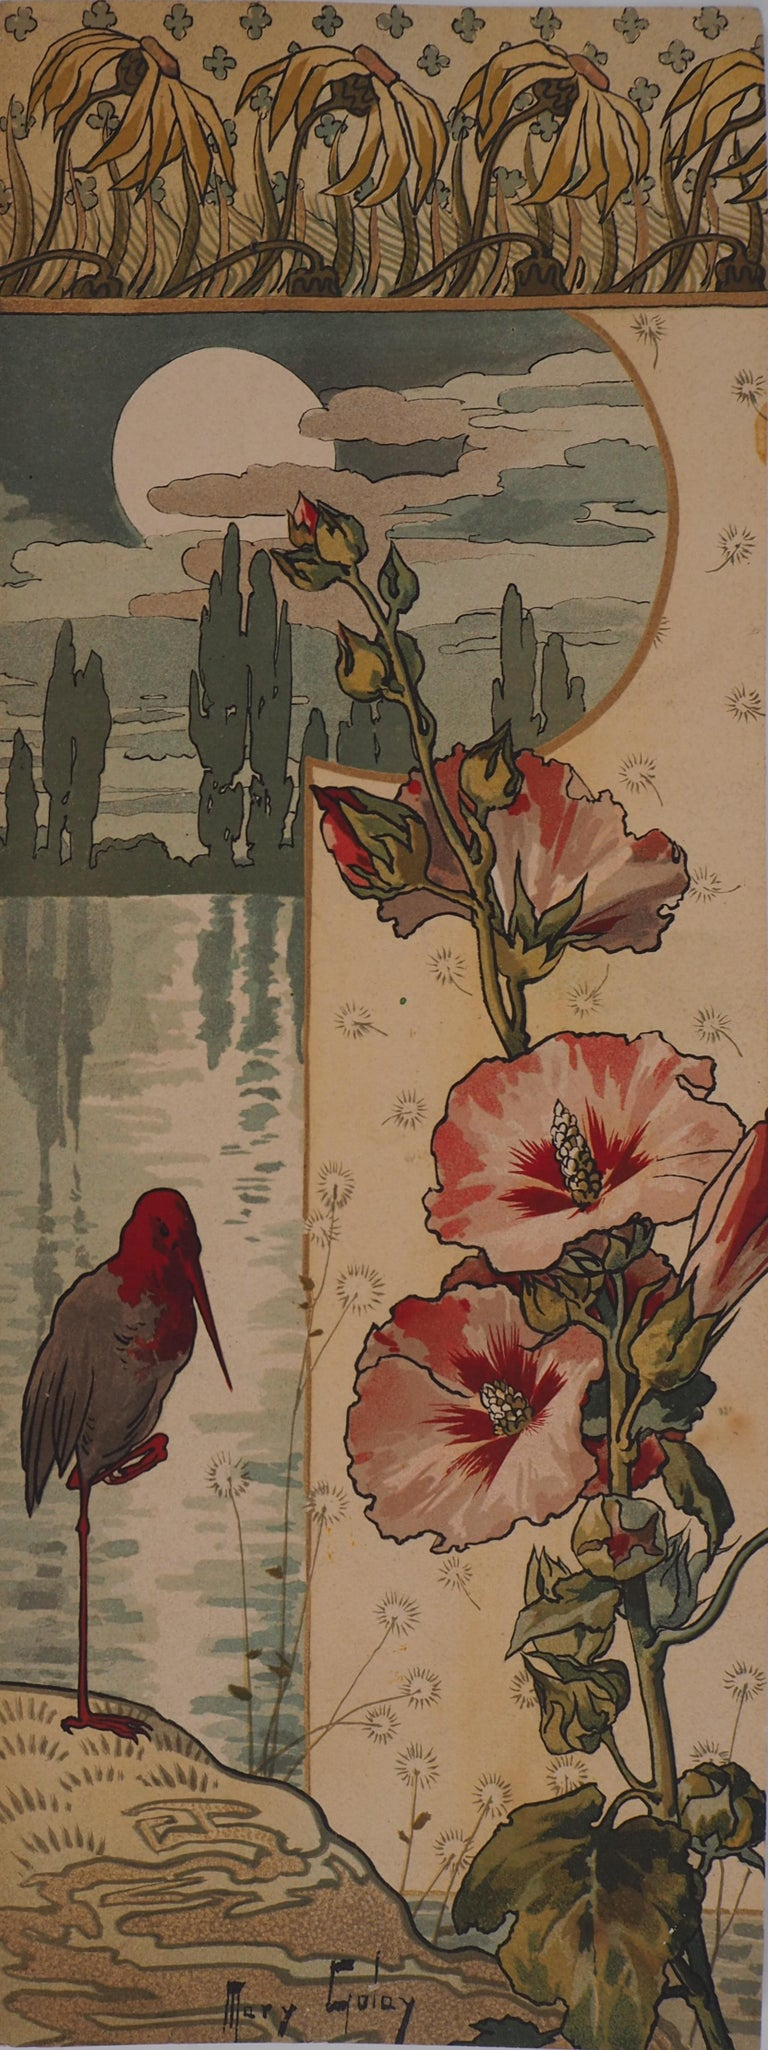 Mary Golay Landscape Print - Hollyhock and Wader at Sunset - Original lithograph